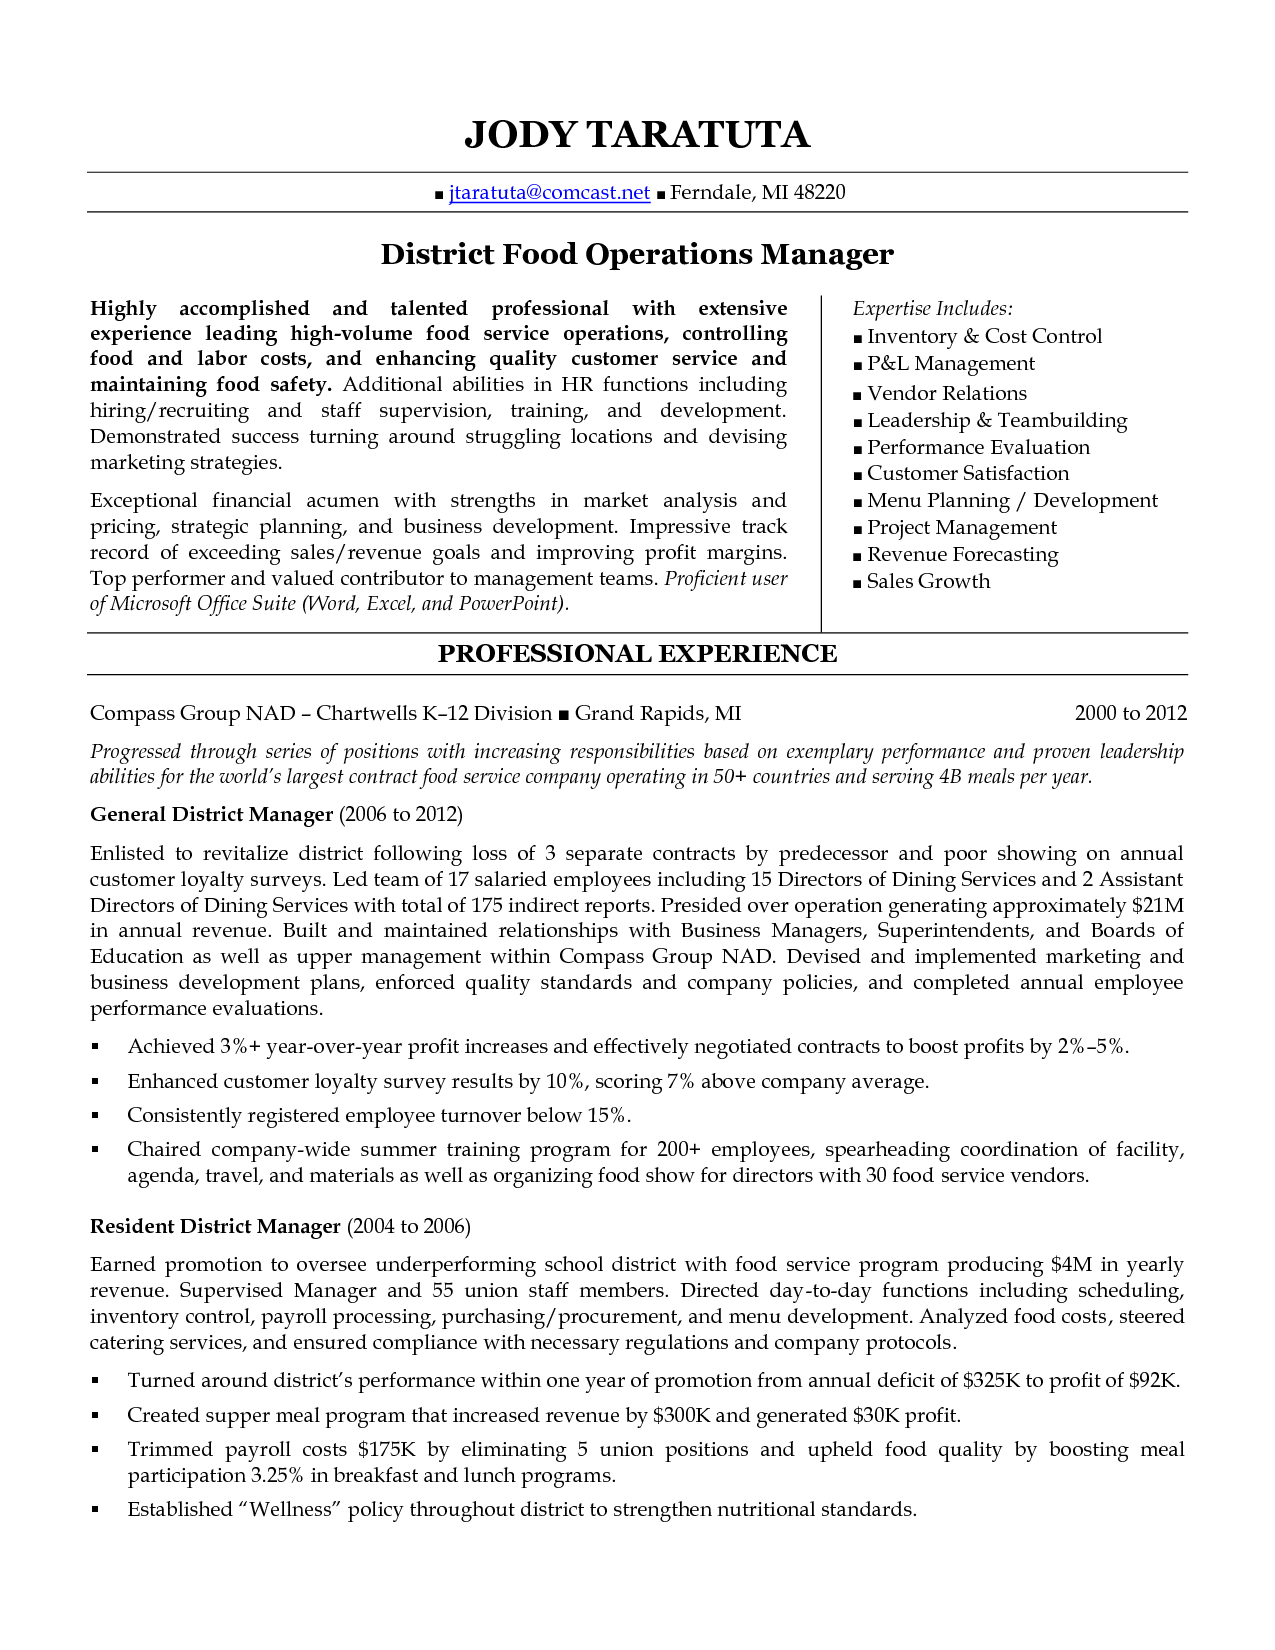 District Manager Resume District Manager Resume  District Food Operations Manager In